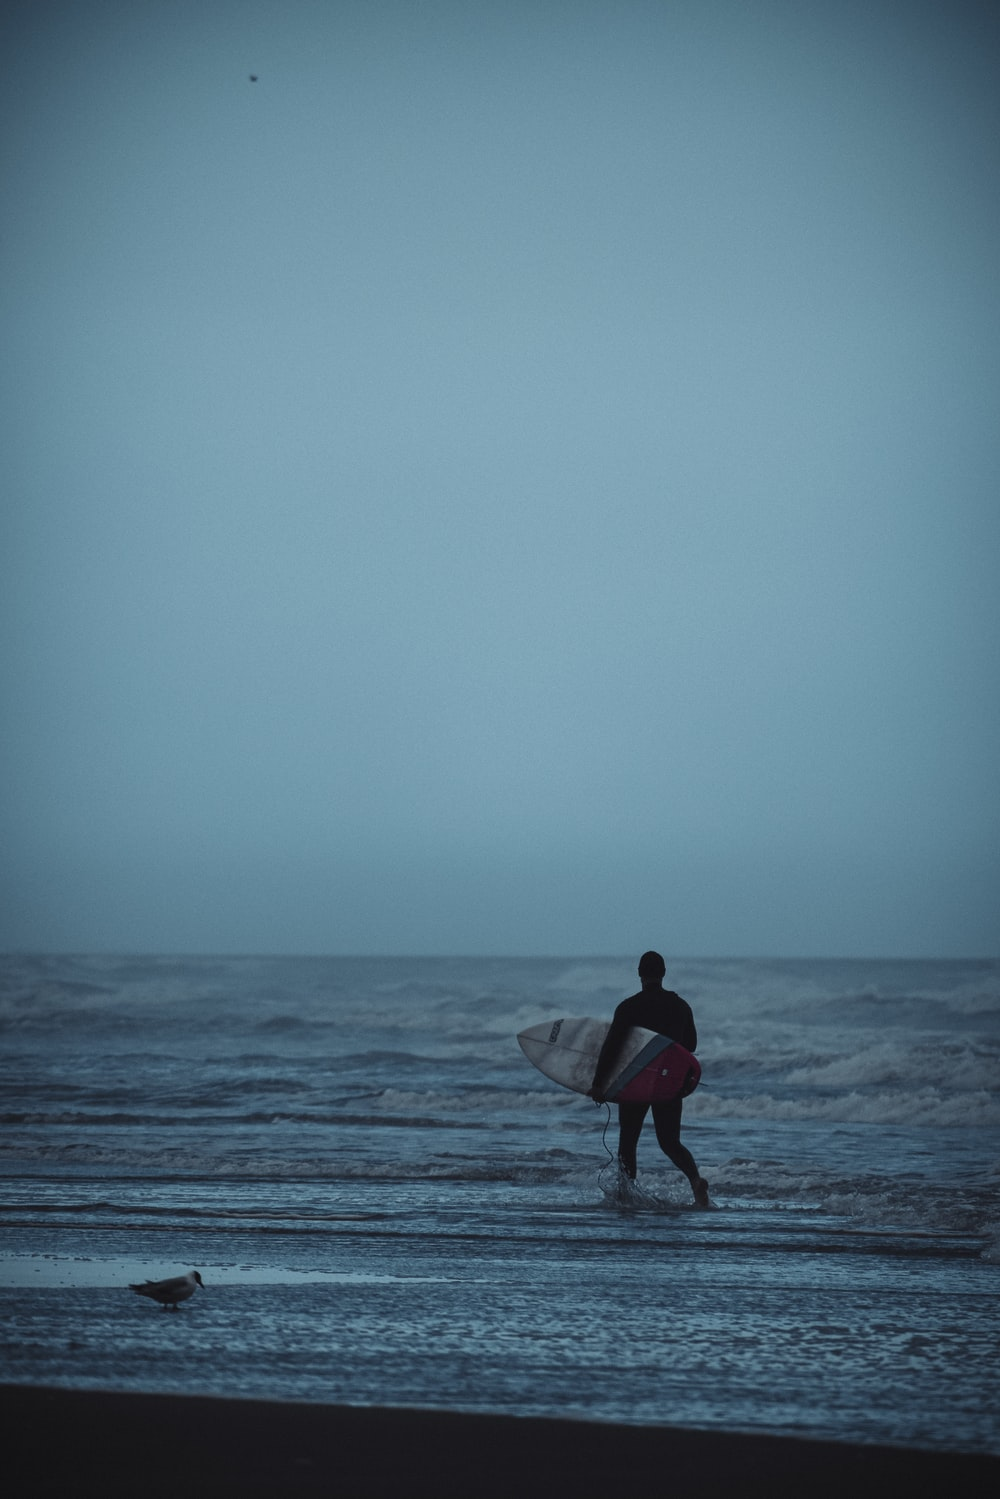 man in red shirt holding white surfboard walking on beach during daytime